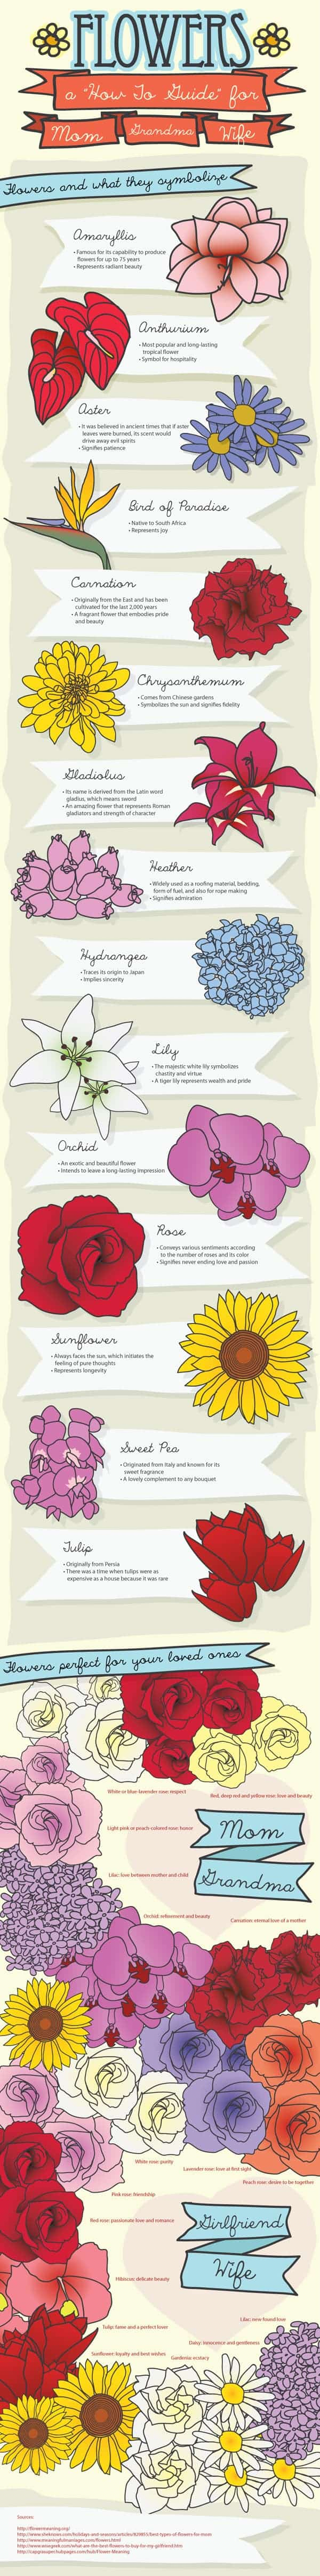 Flowers and What They Symbolize